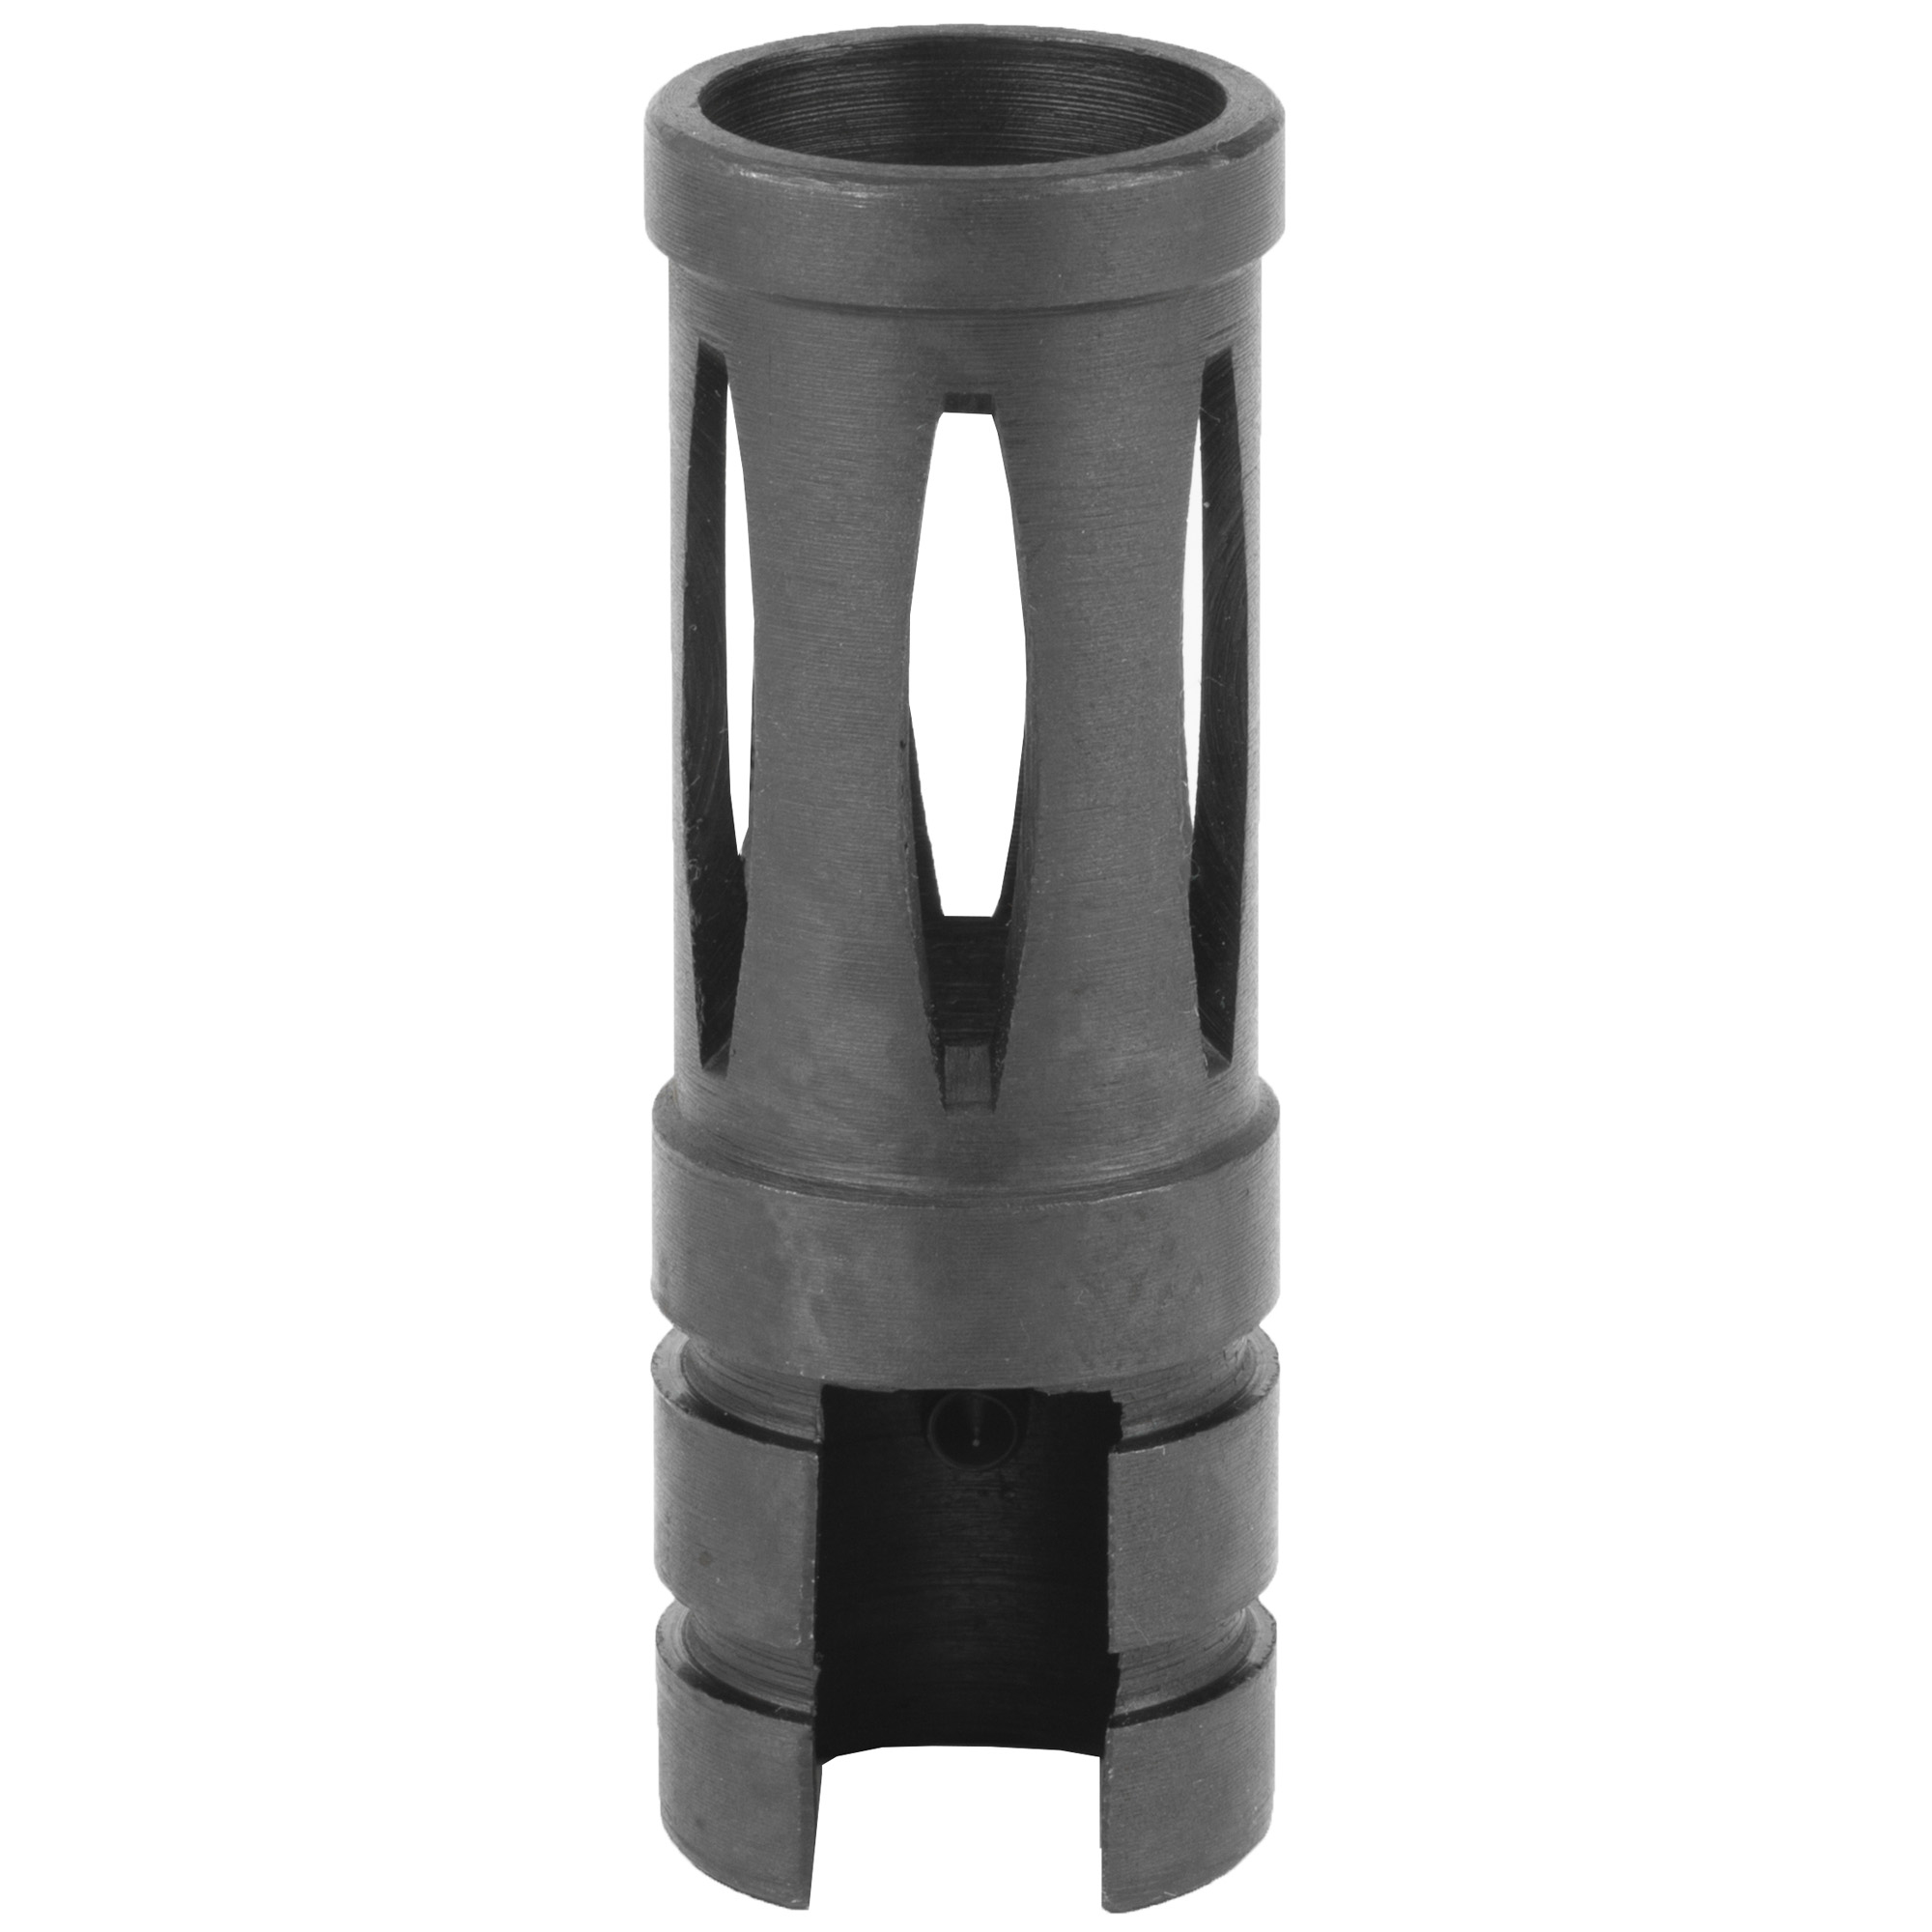 Short version of the NCSTAR 10/22 muzzle brake.